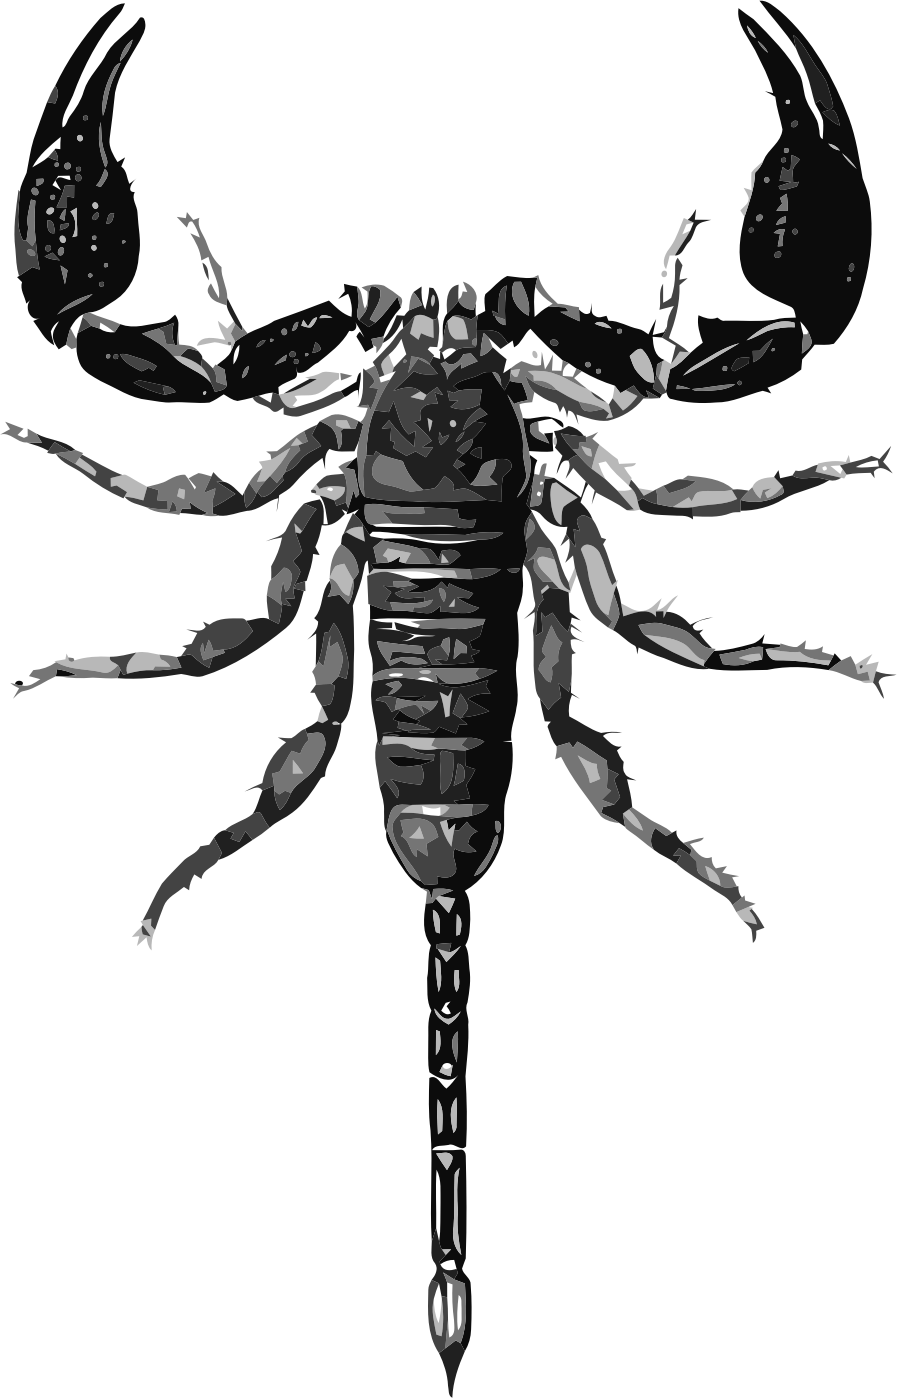 Drawing insect biological. Scorpion illustration scorpions transprent